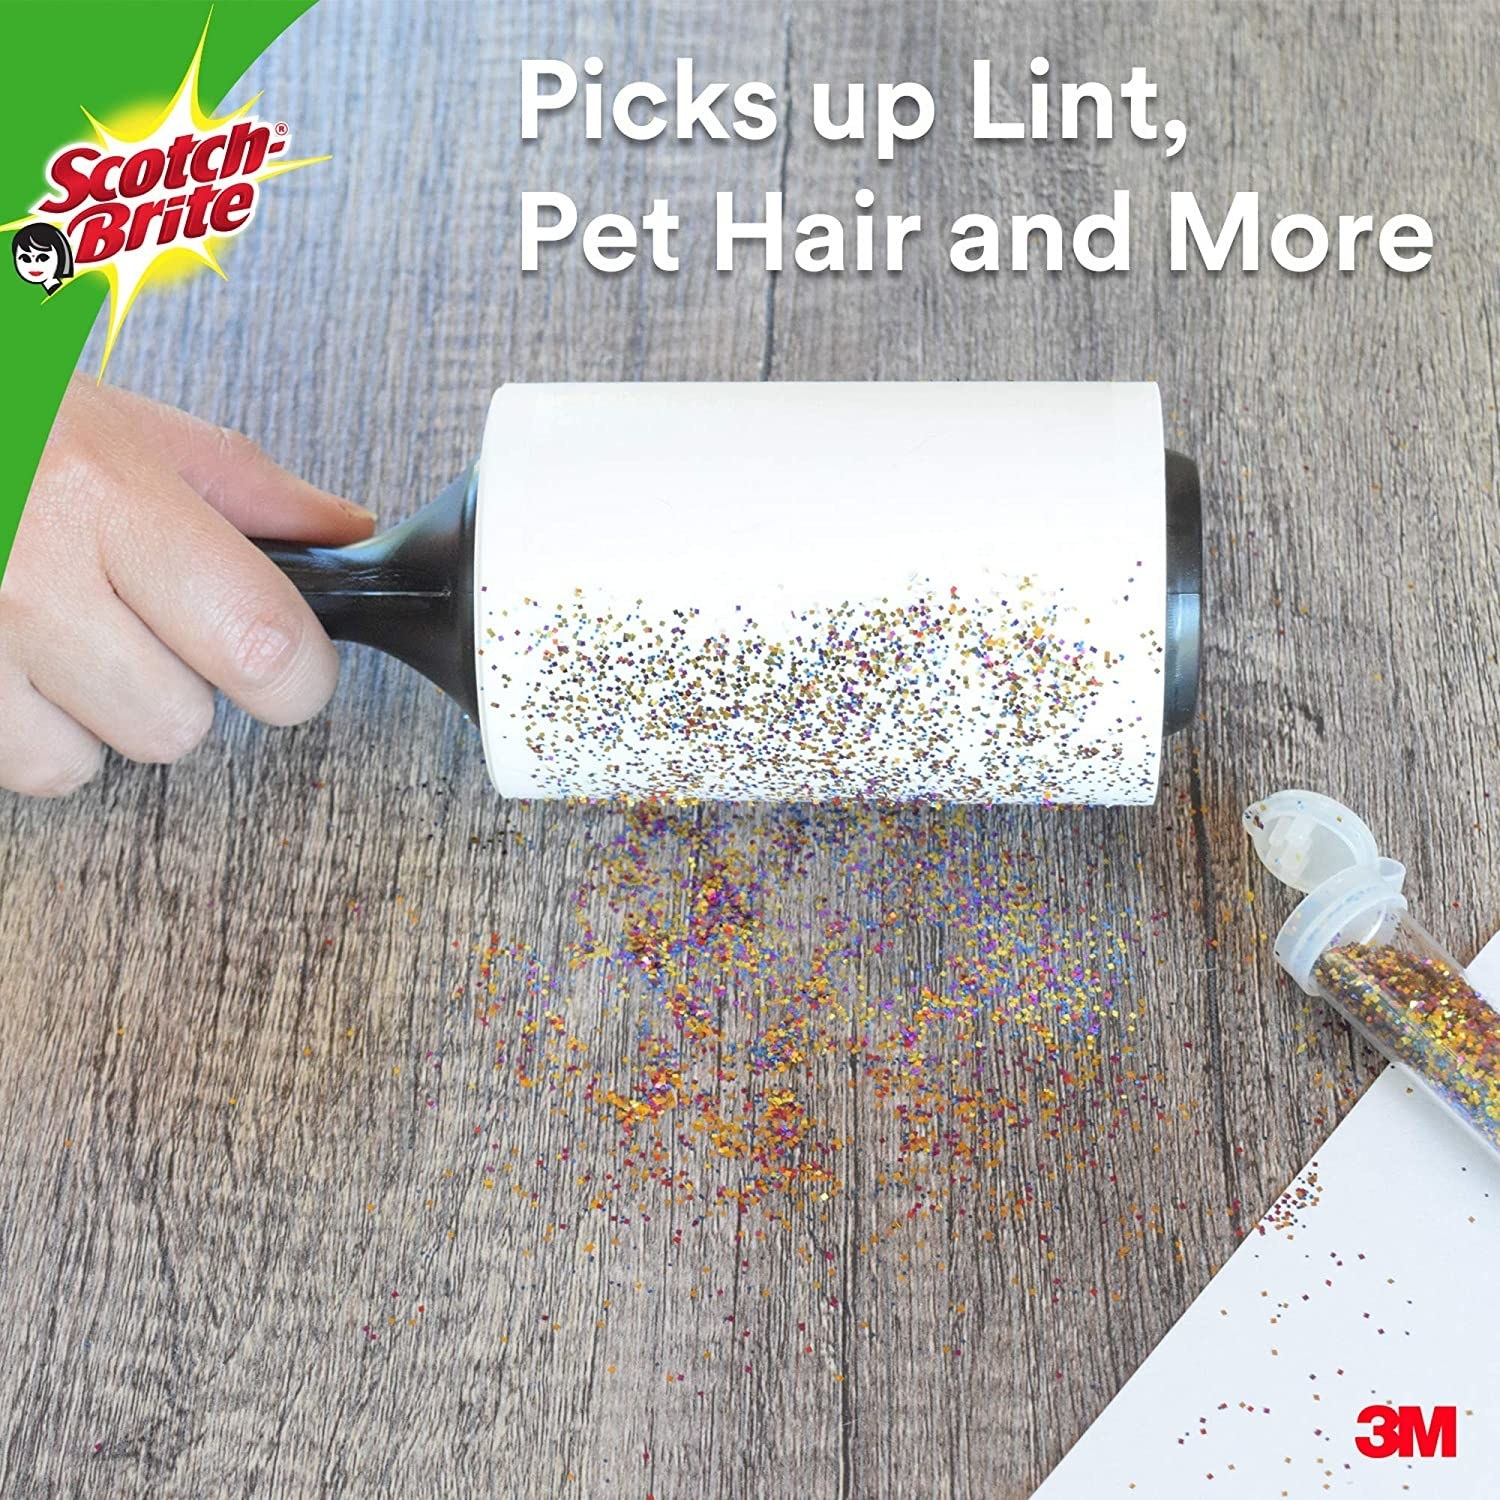 A Scotch-Brite roller being used to pick up glitter from a wooden table